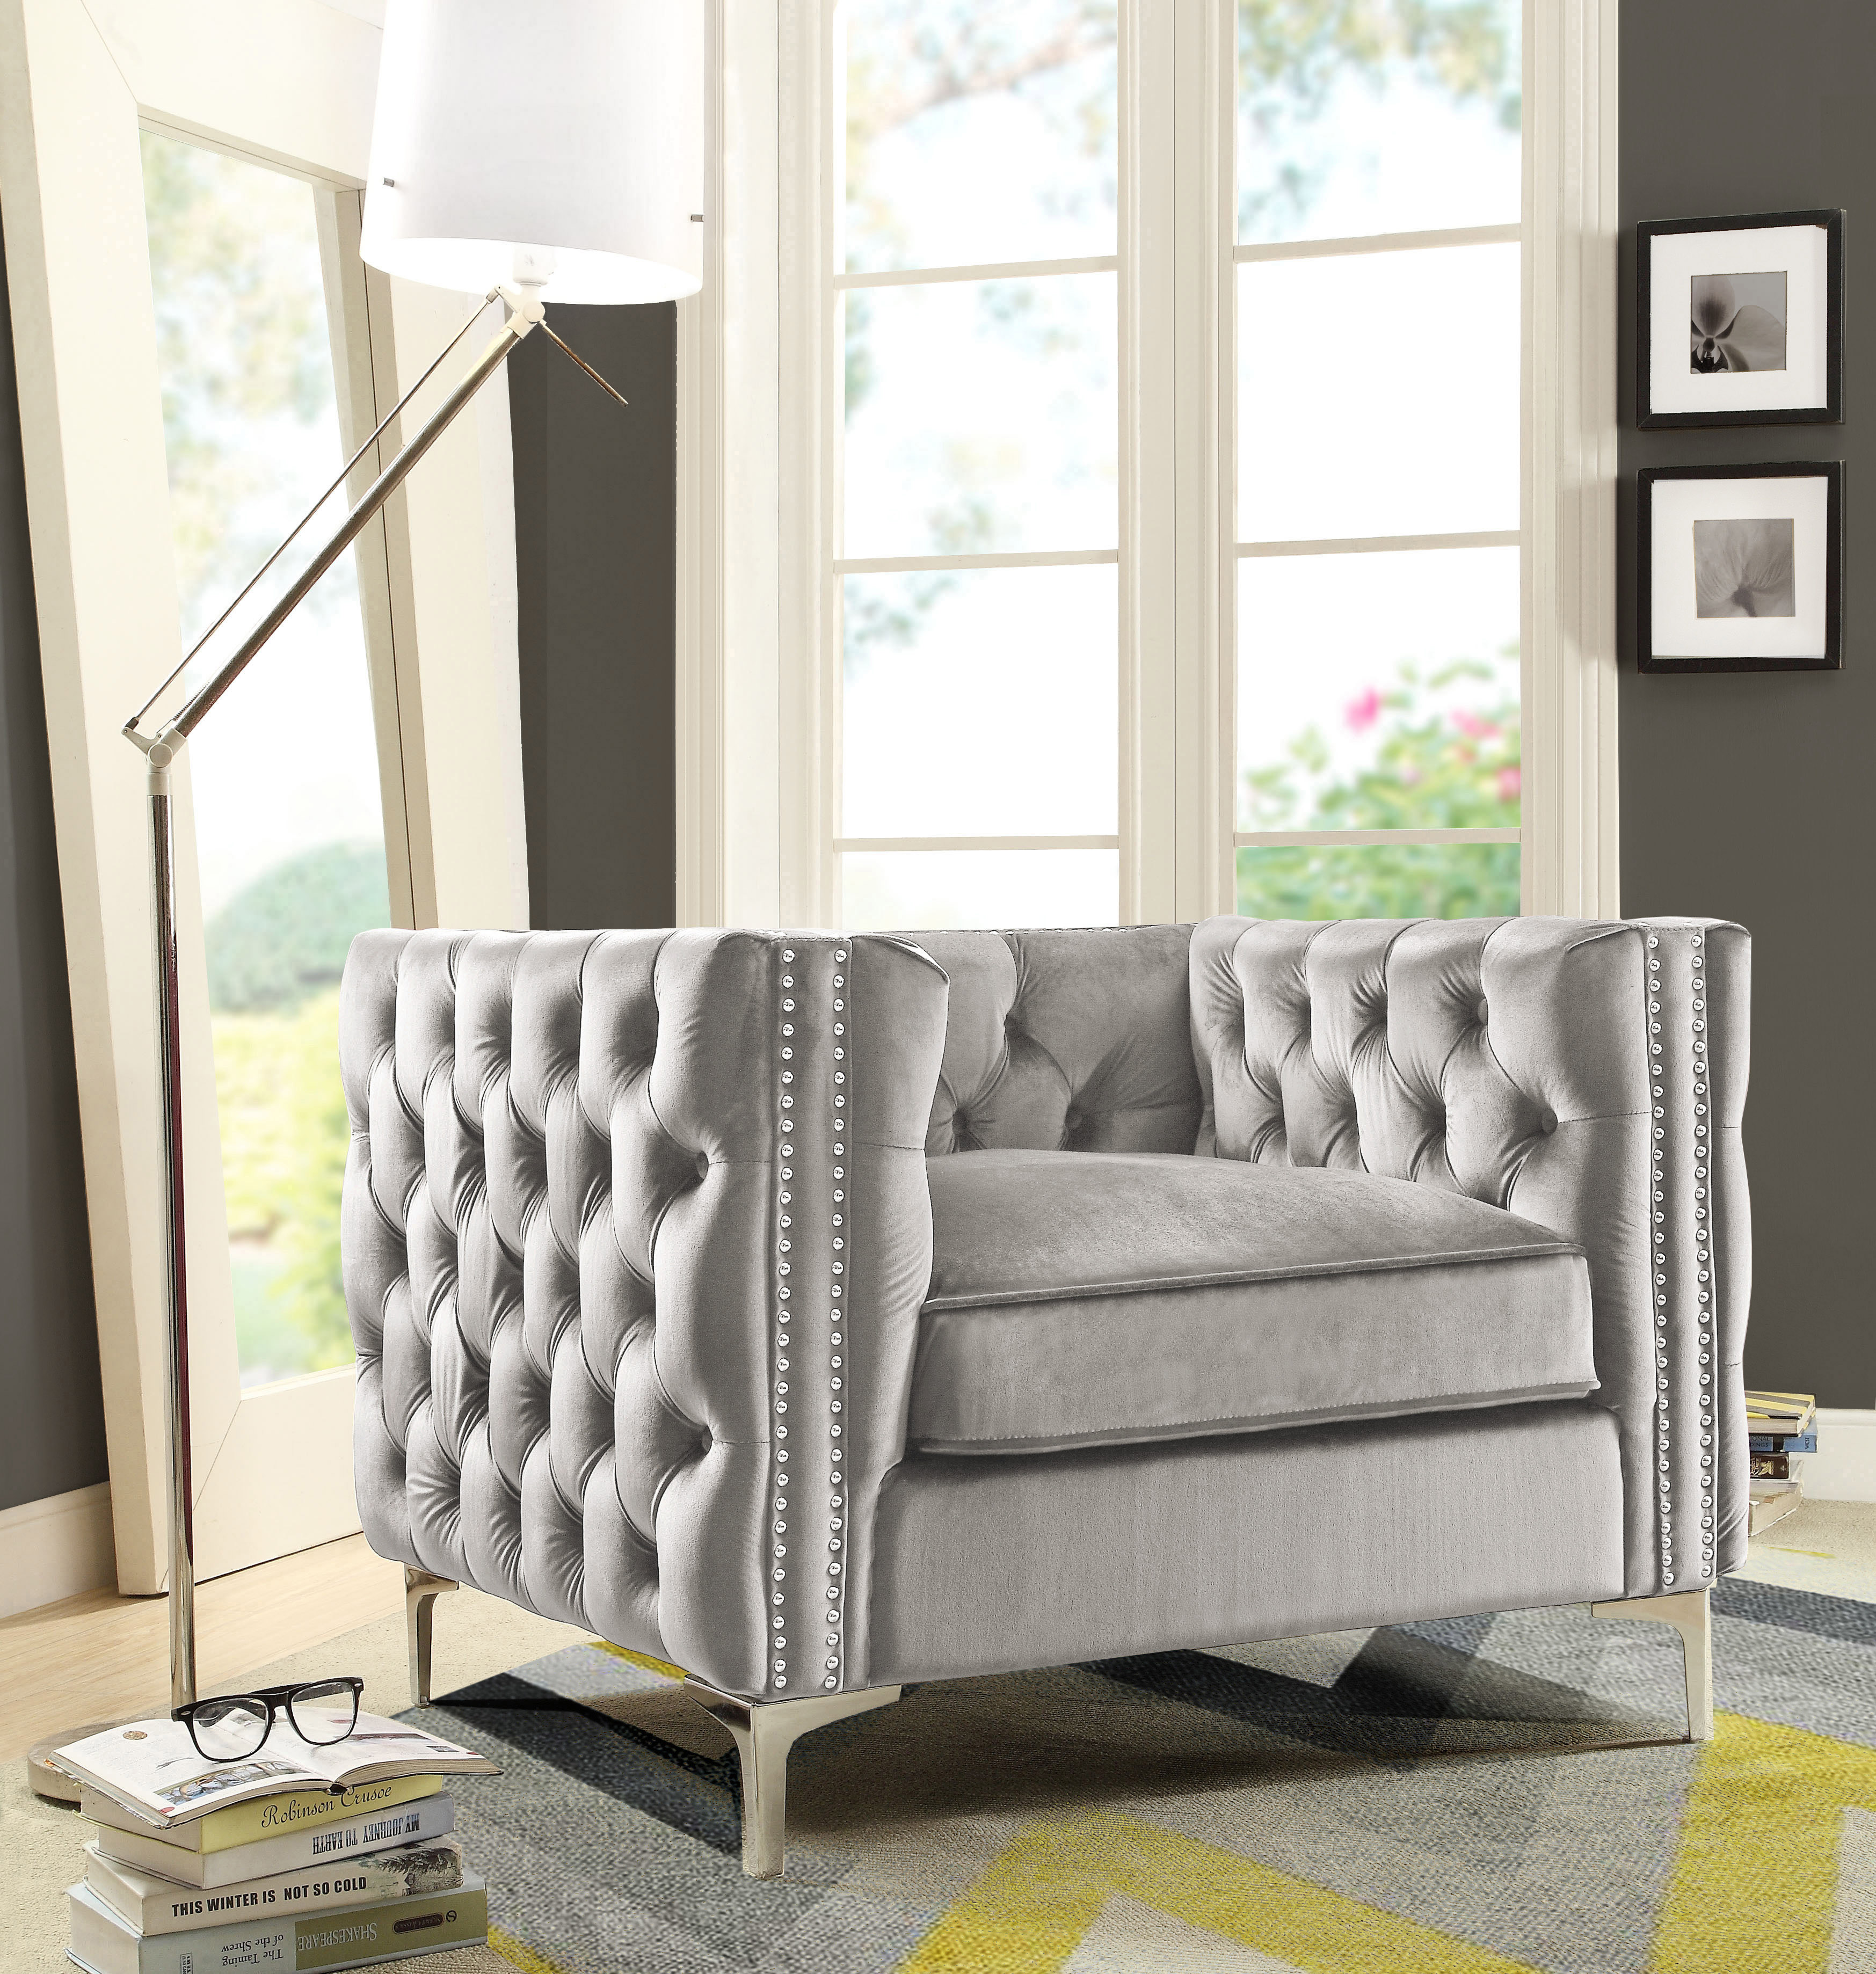 Chic Home Monet Velvet Modern Contemporary Button Tufted with Silver Nailhead Trim Silvertone Metal Y-leg Club Chair,... by Chic Home